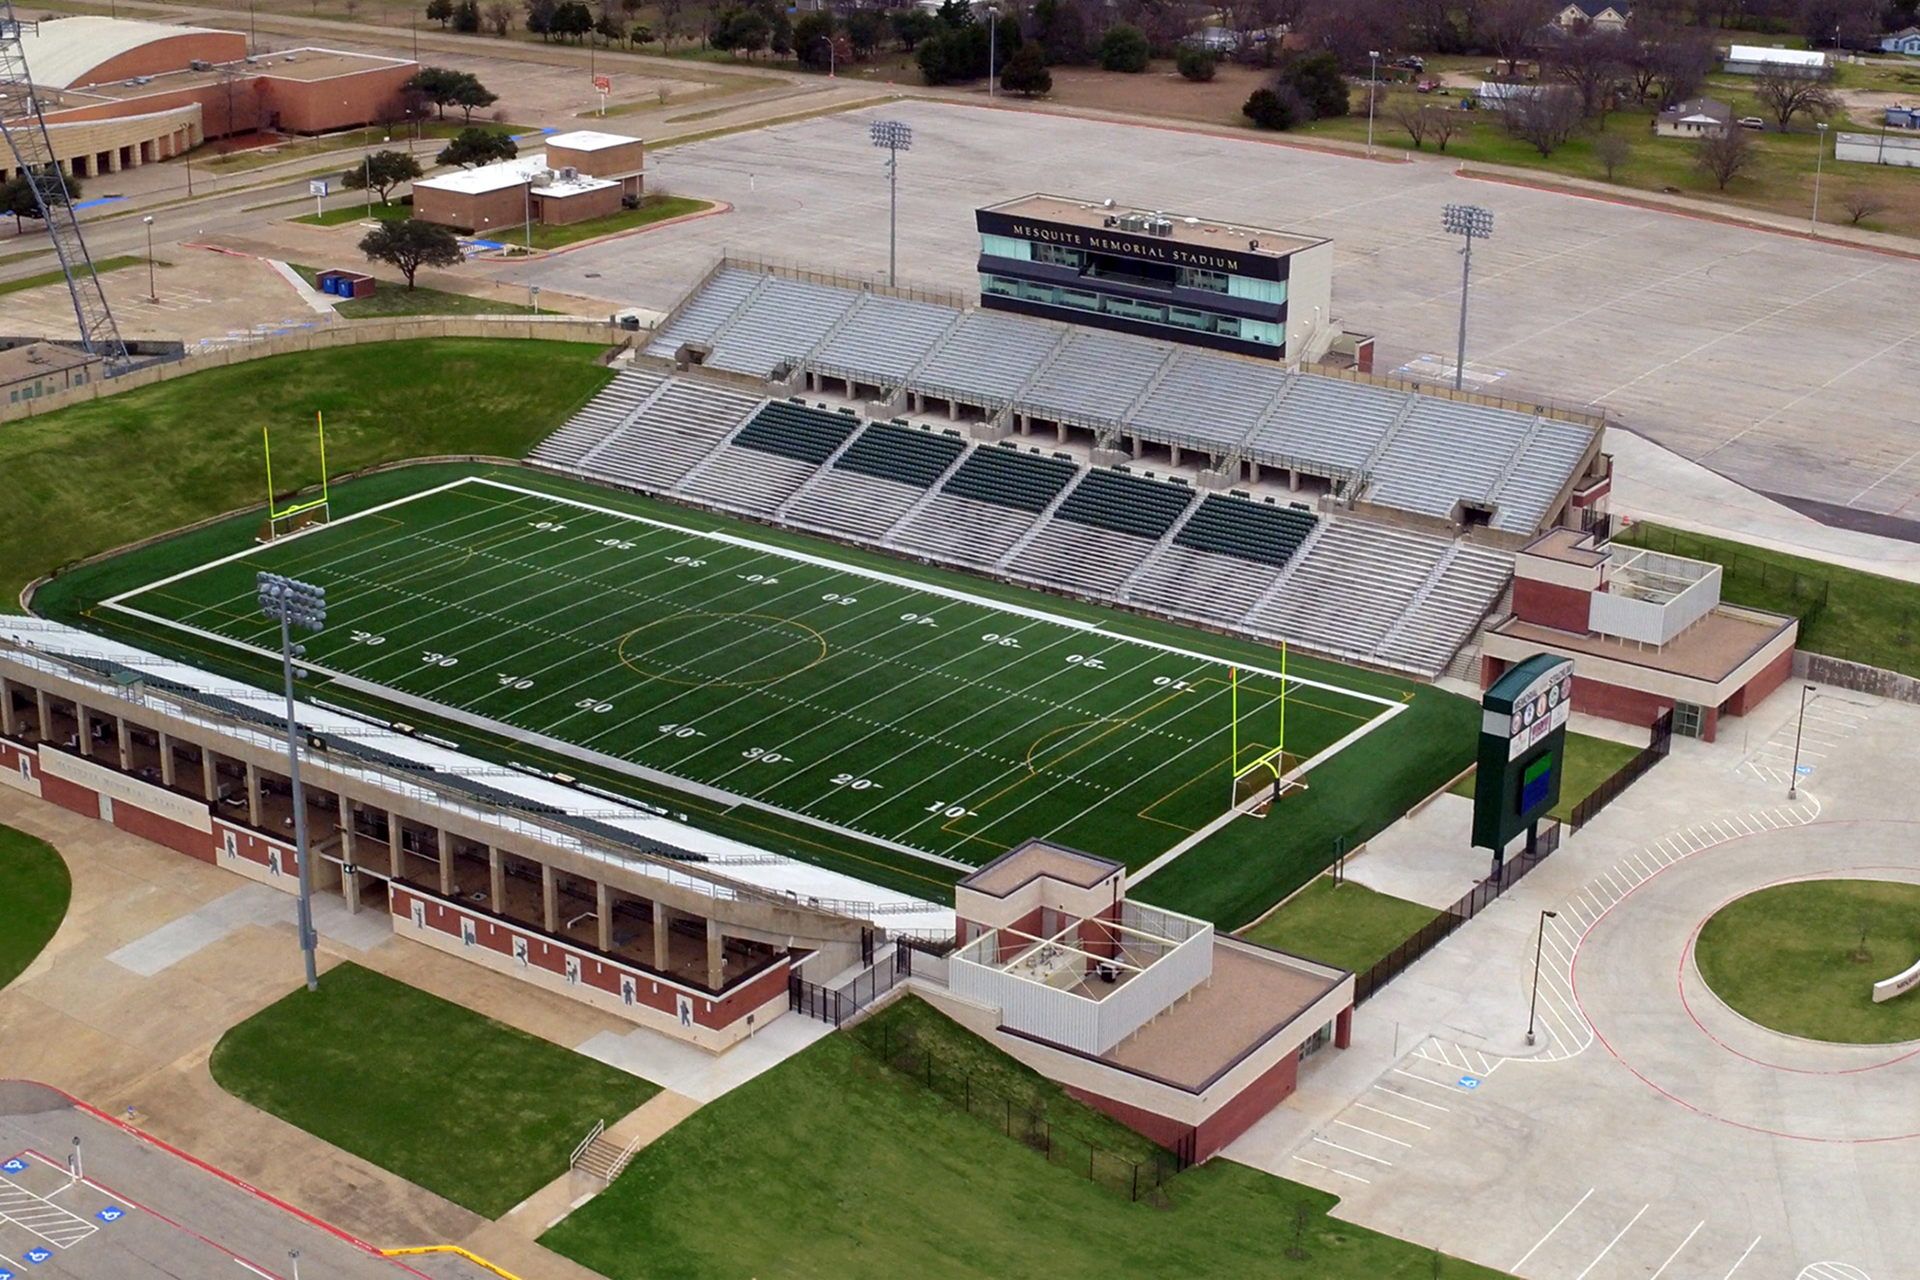 Mesquite Memorial Stadium 2